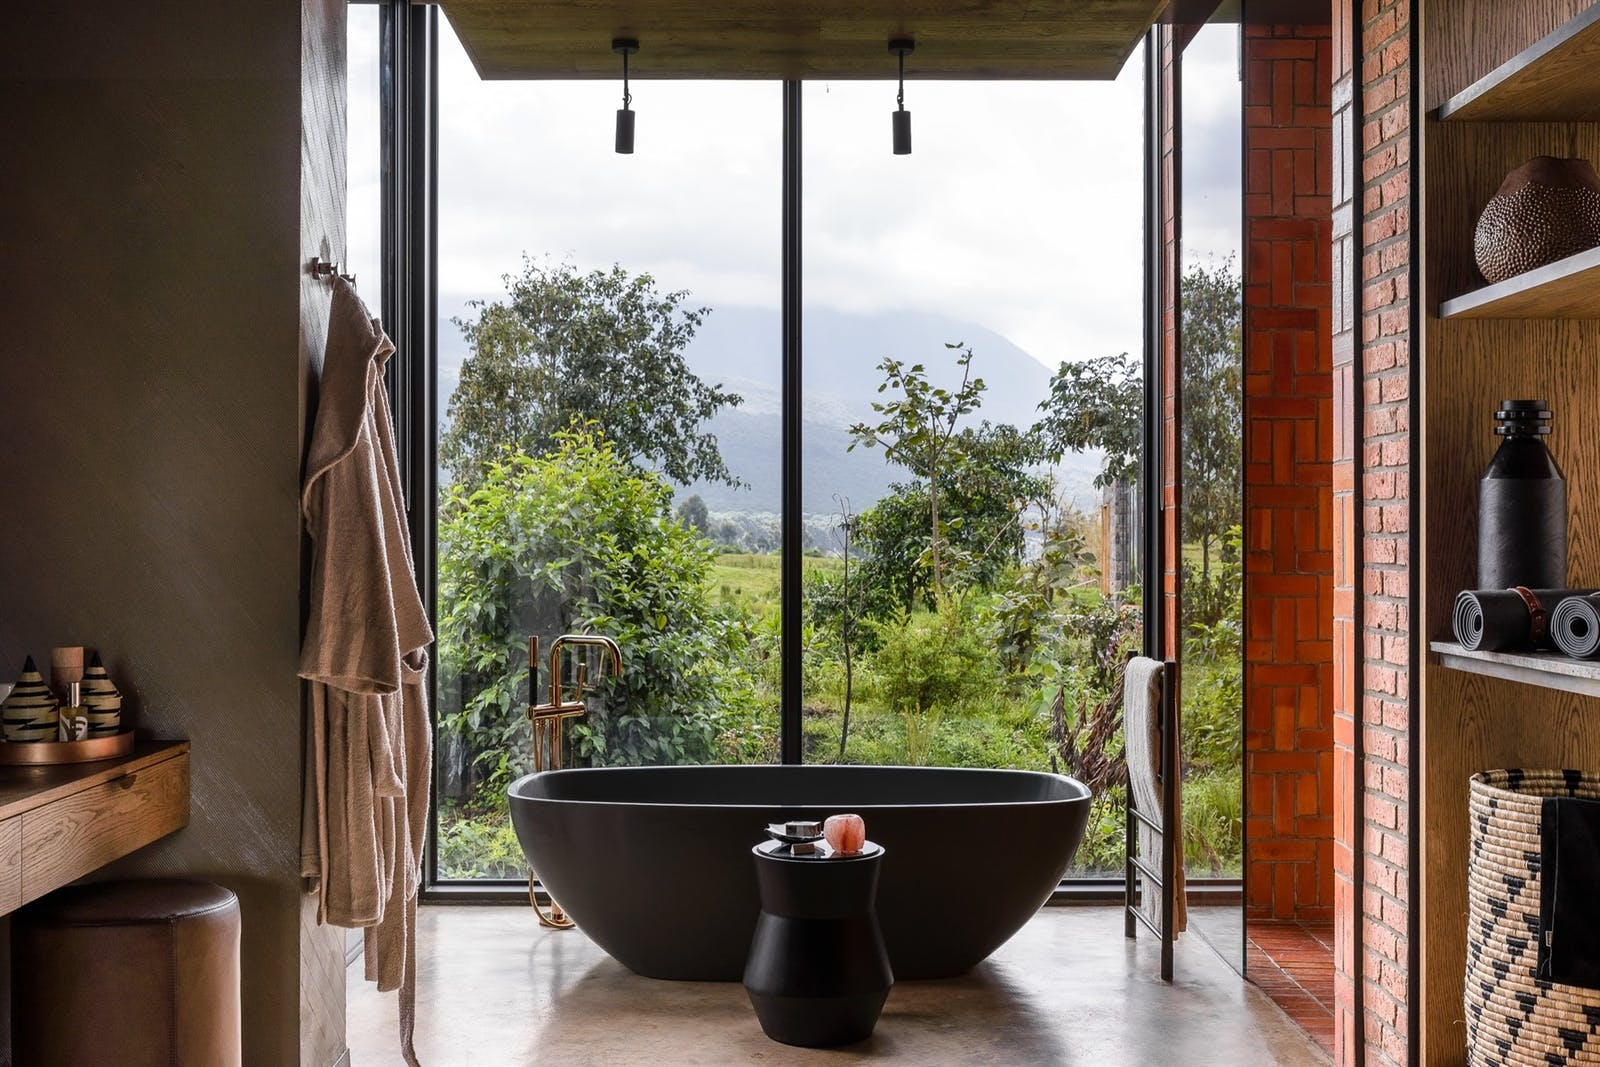 Lodge Bathroom at Singita Kwitonda Lodge, Rwanda, Africa